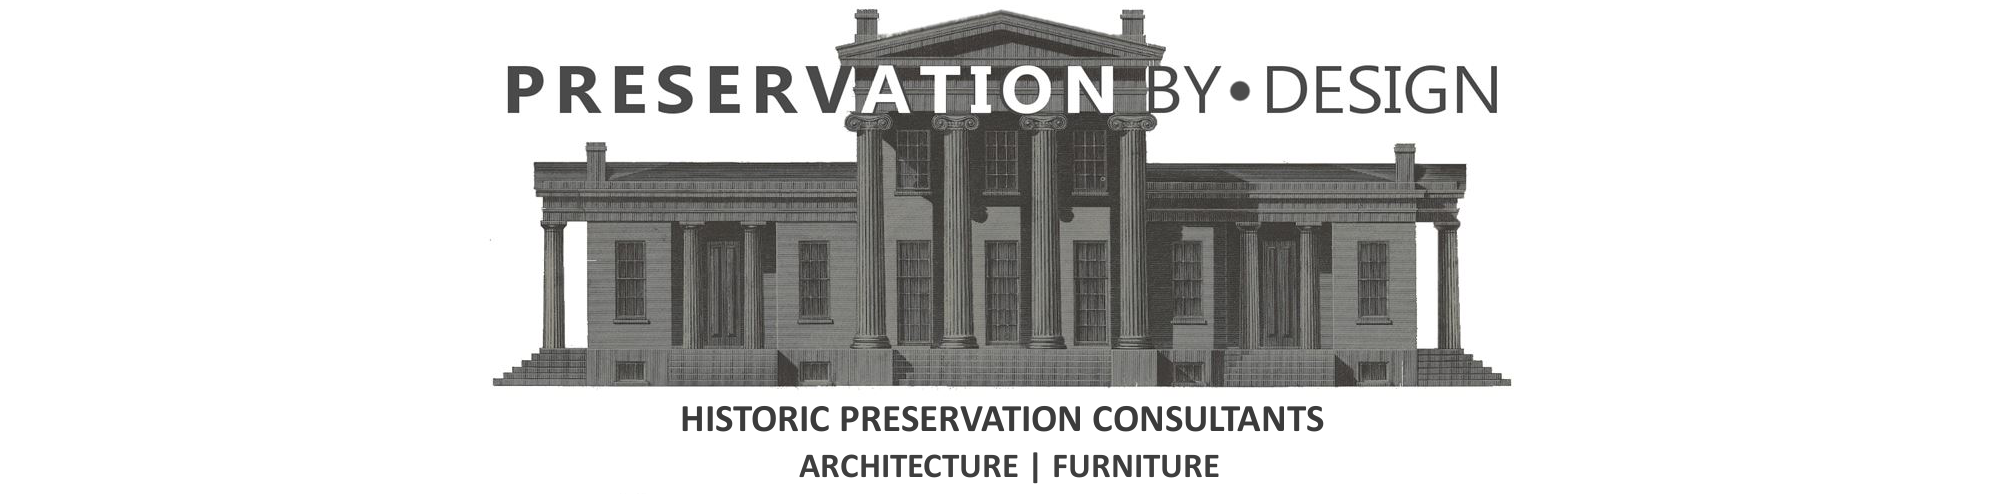 PRESERVATION BY DESIGN